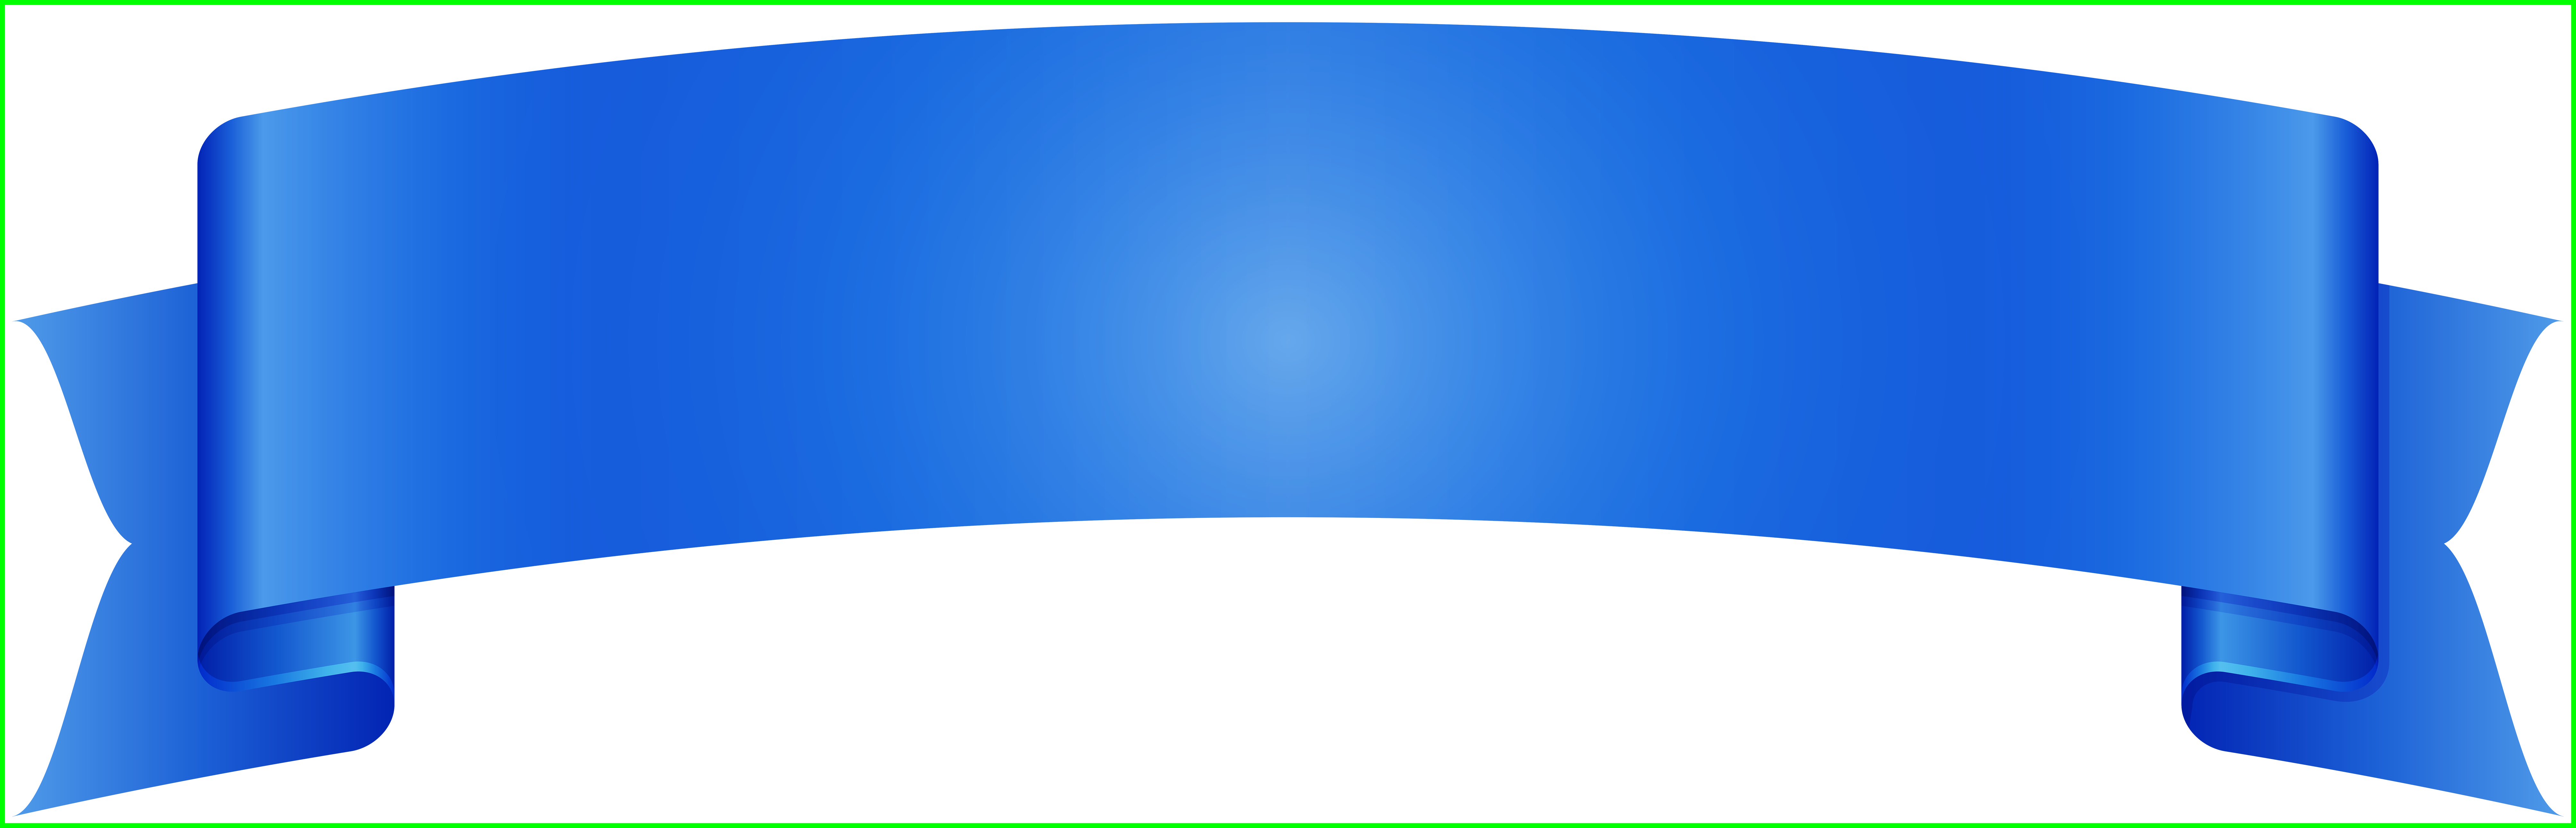 Banner png transparent background. Incredible blue image luoghi